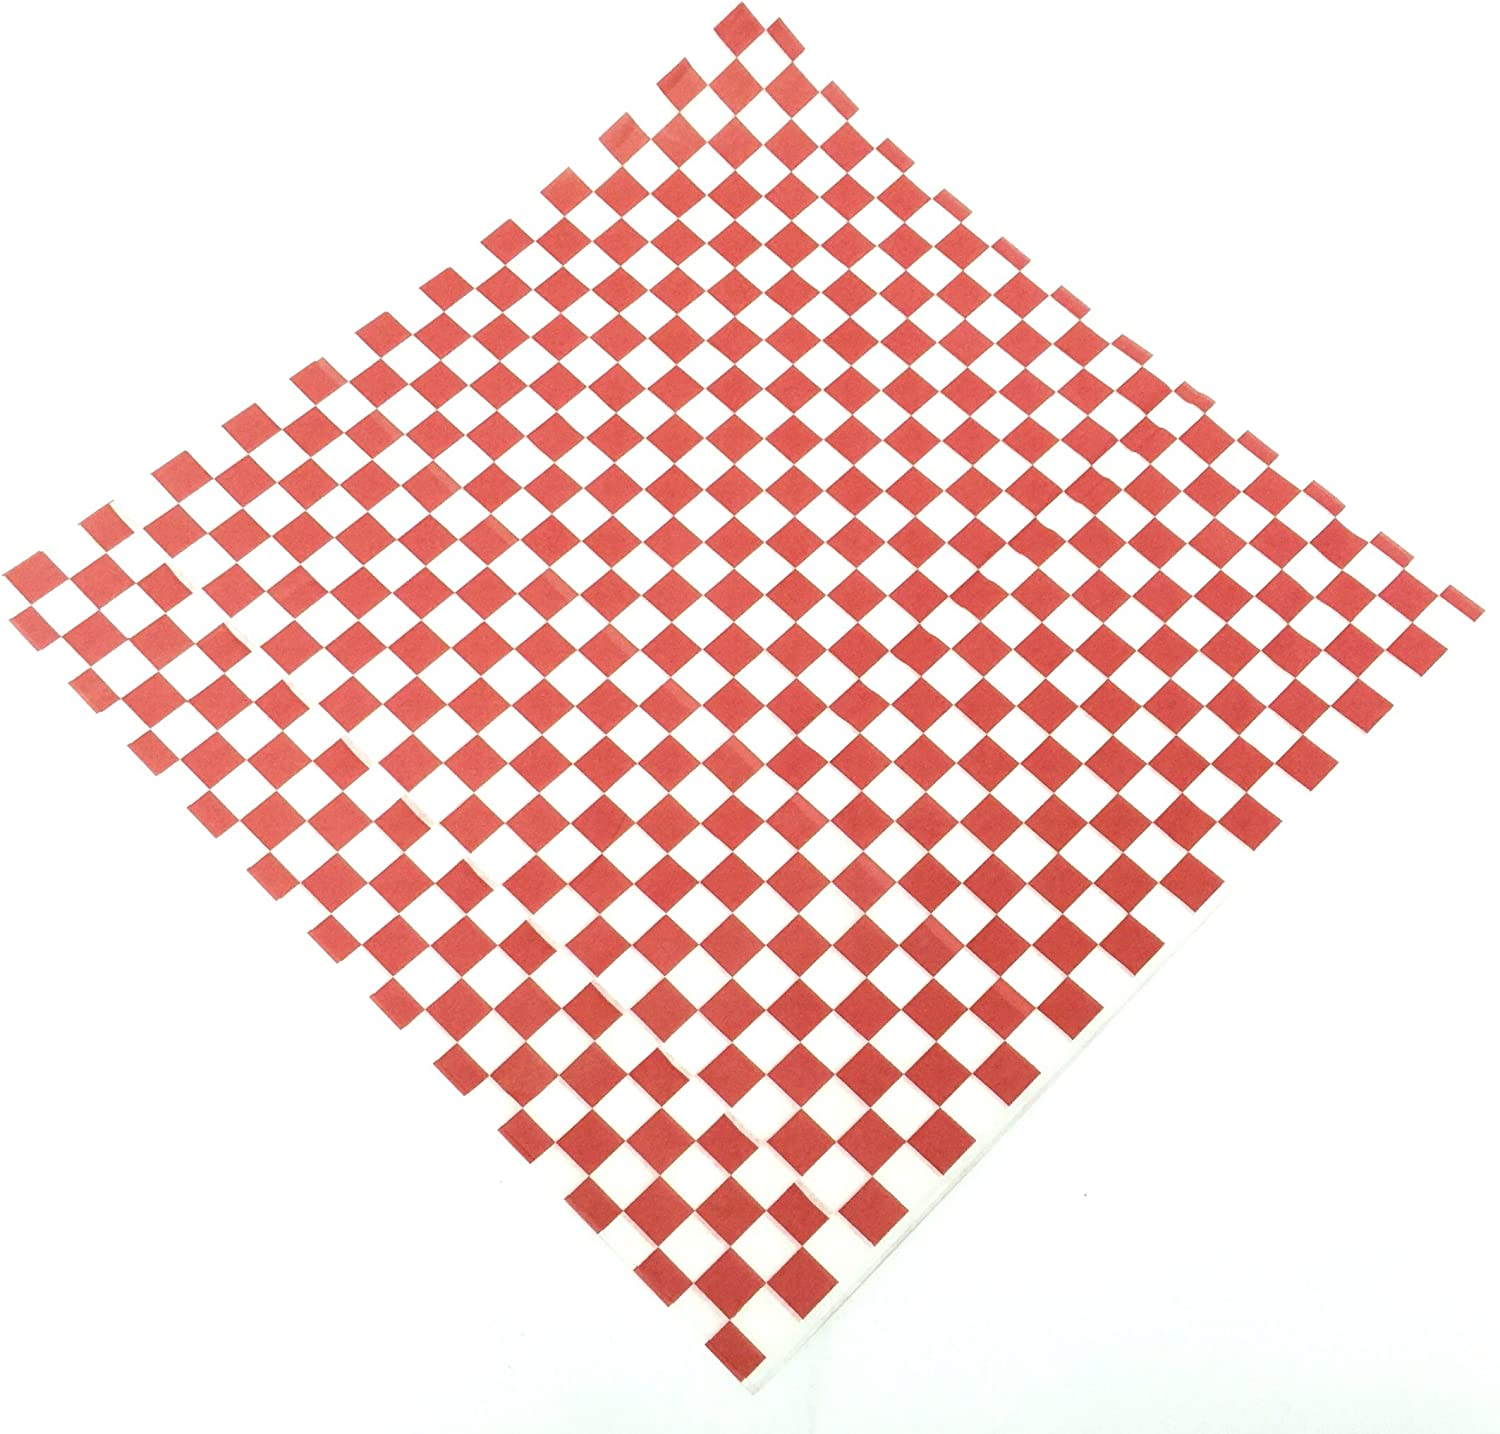 100 Sheets 12 X12 Red and White Checkered Food Picnic Basket Hamburger Paper Liners & Wrapping Tissue